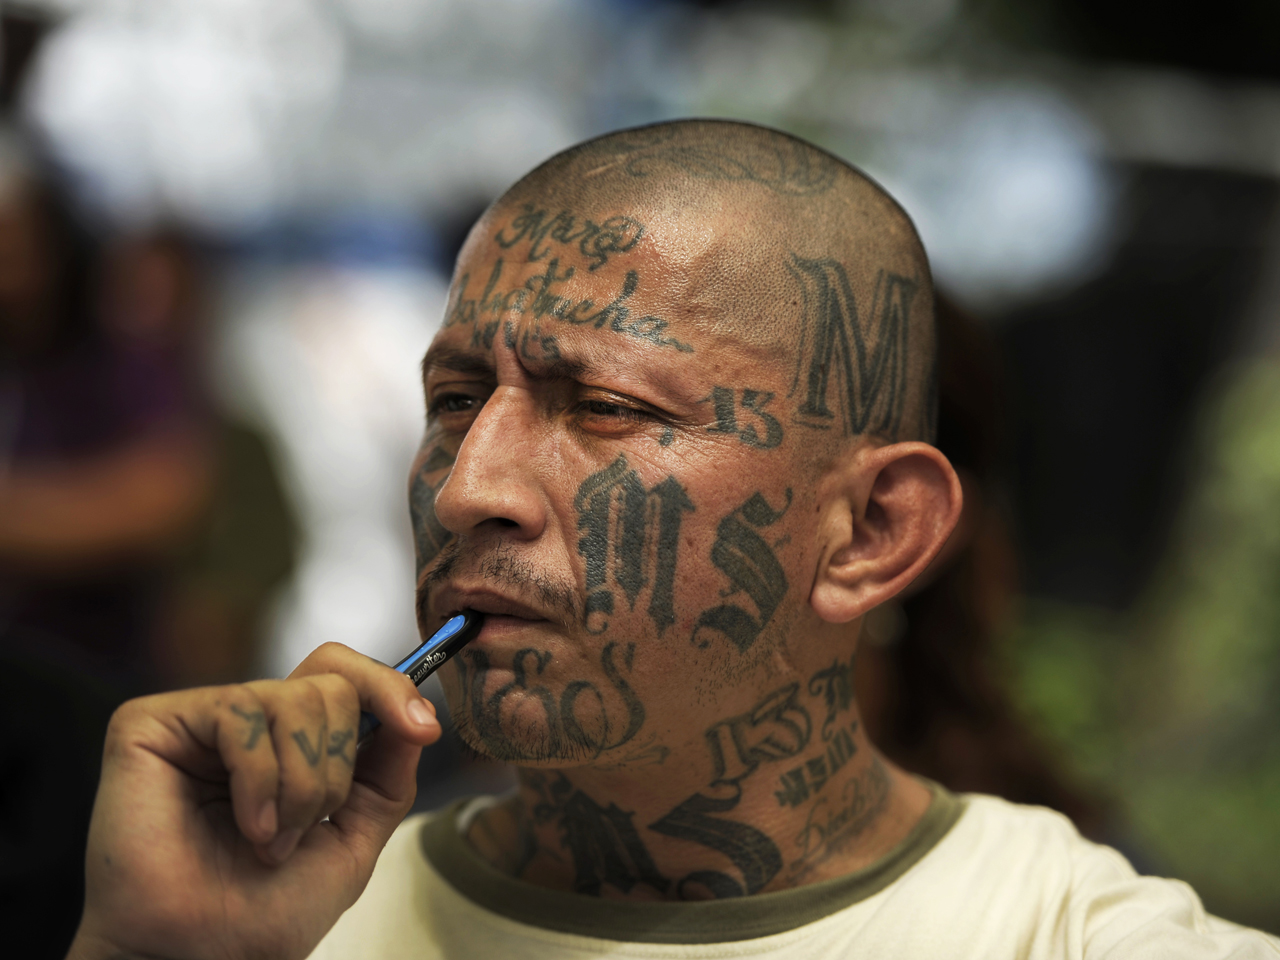 U.S. government targets infamous street gang MS-13 - CBS News